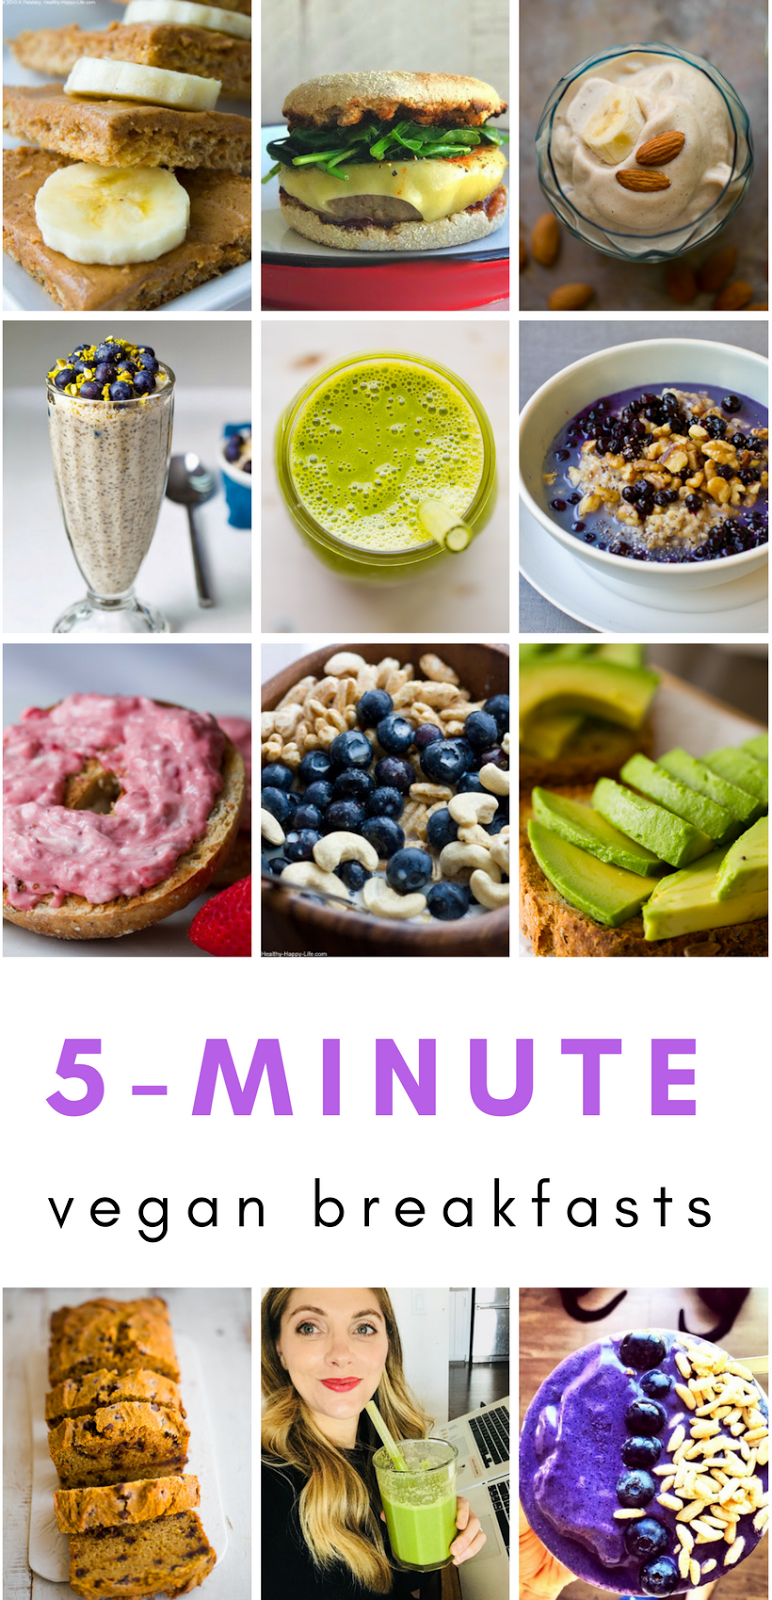 12 Five Minute Vegan Breakfasts With Images Plant Based Recipes Breakfast Breakfast Fast Vegan Breakfast